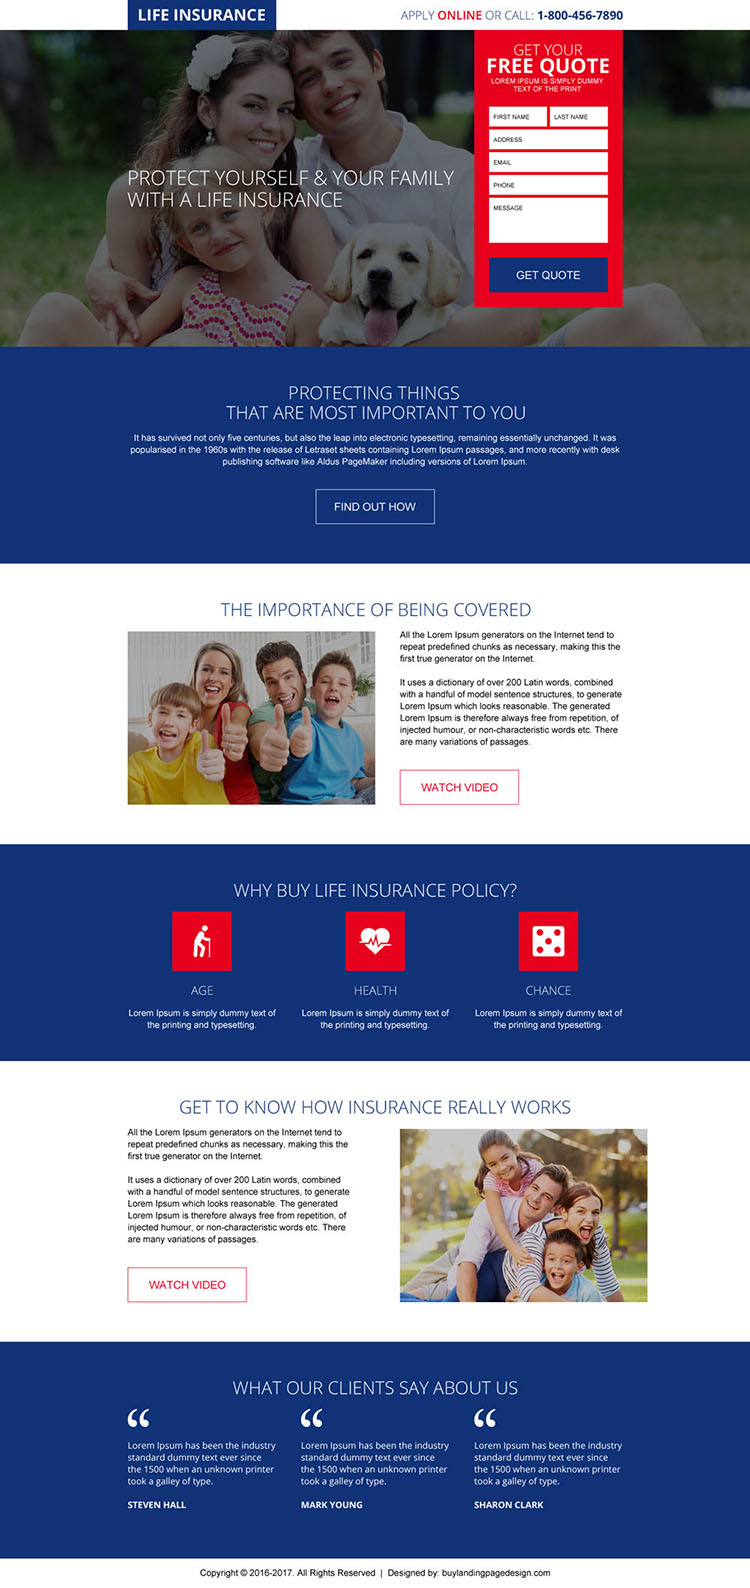 online free life insurance quote responsive landing page design